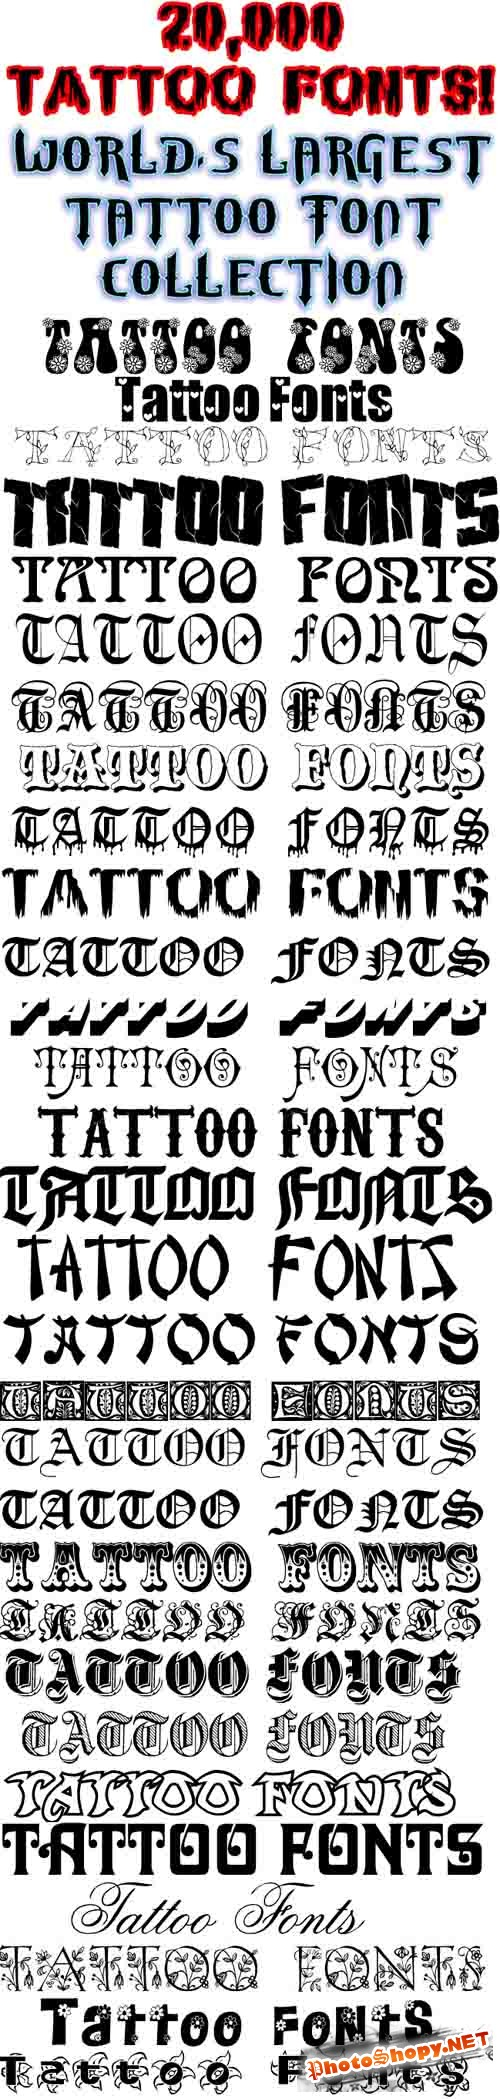 20k Tattoo Fonts Worlds Largest Collections